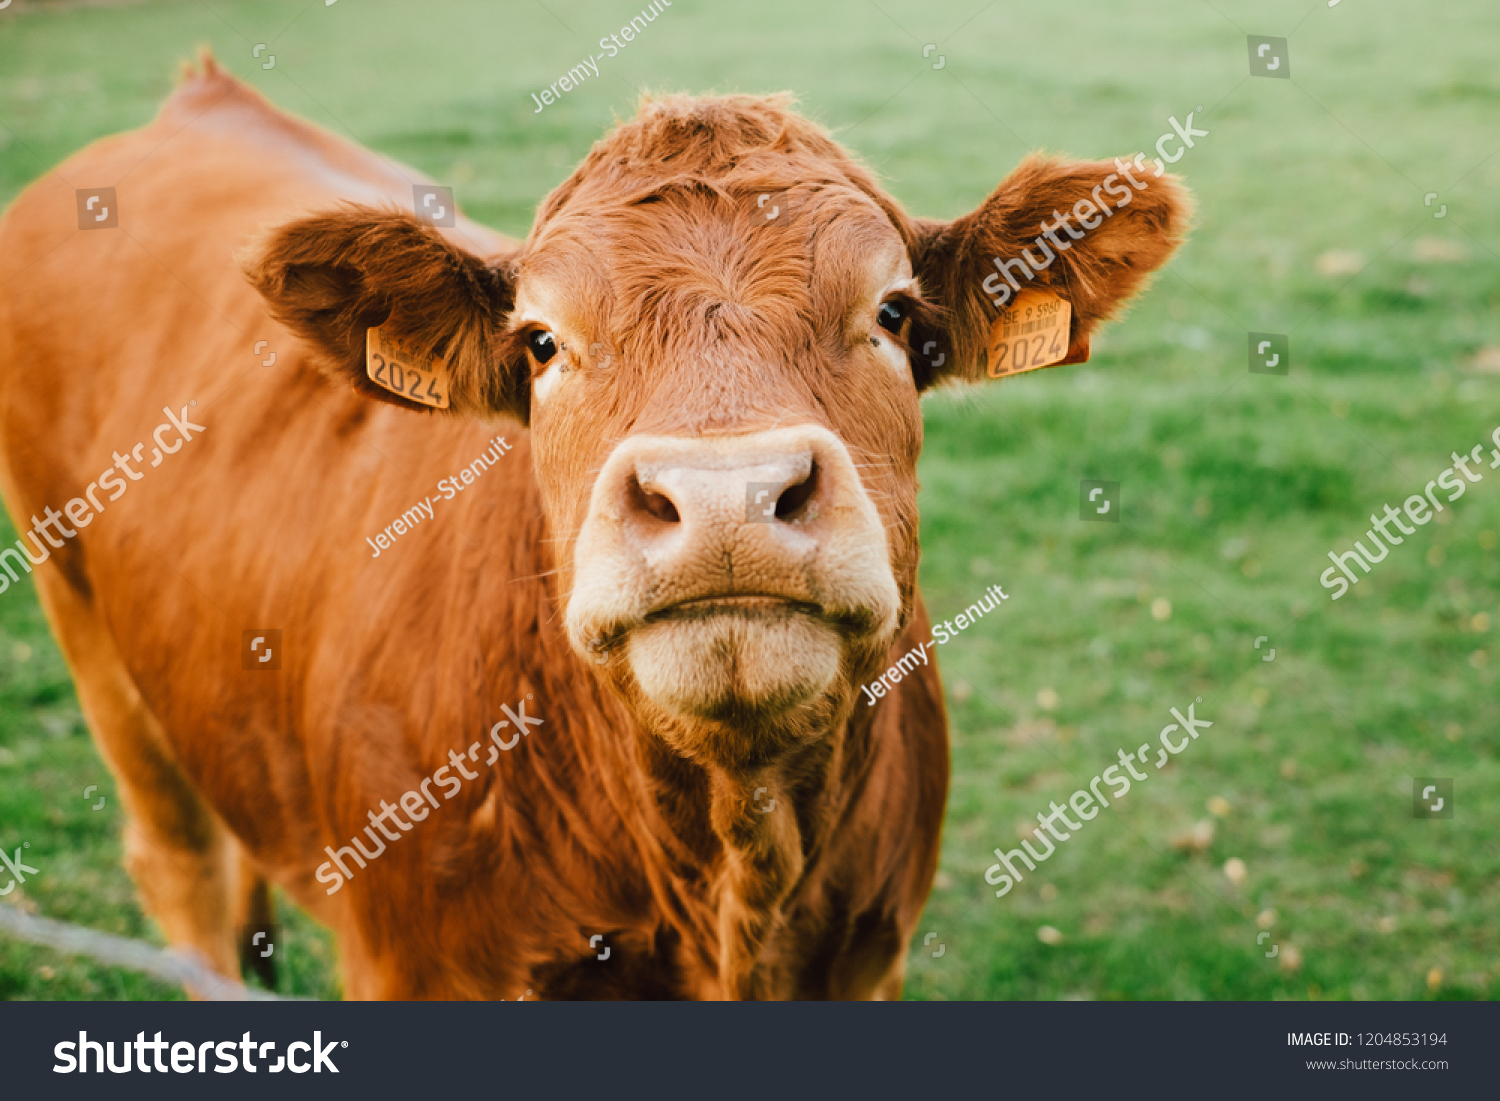 Limousin cow looking at the camera in a field #1204853194